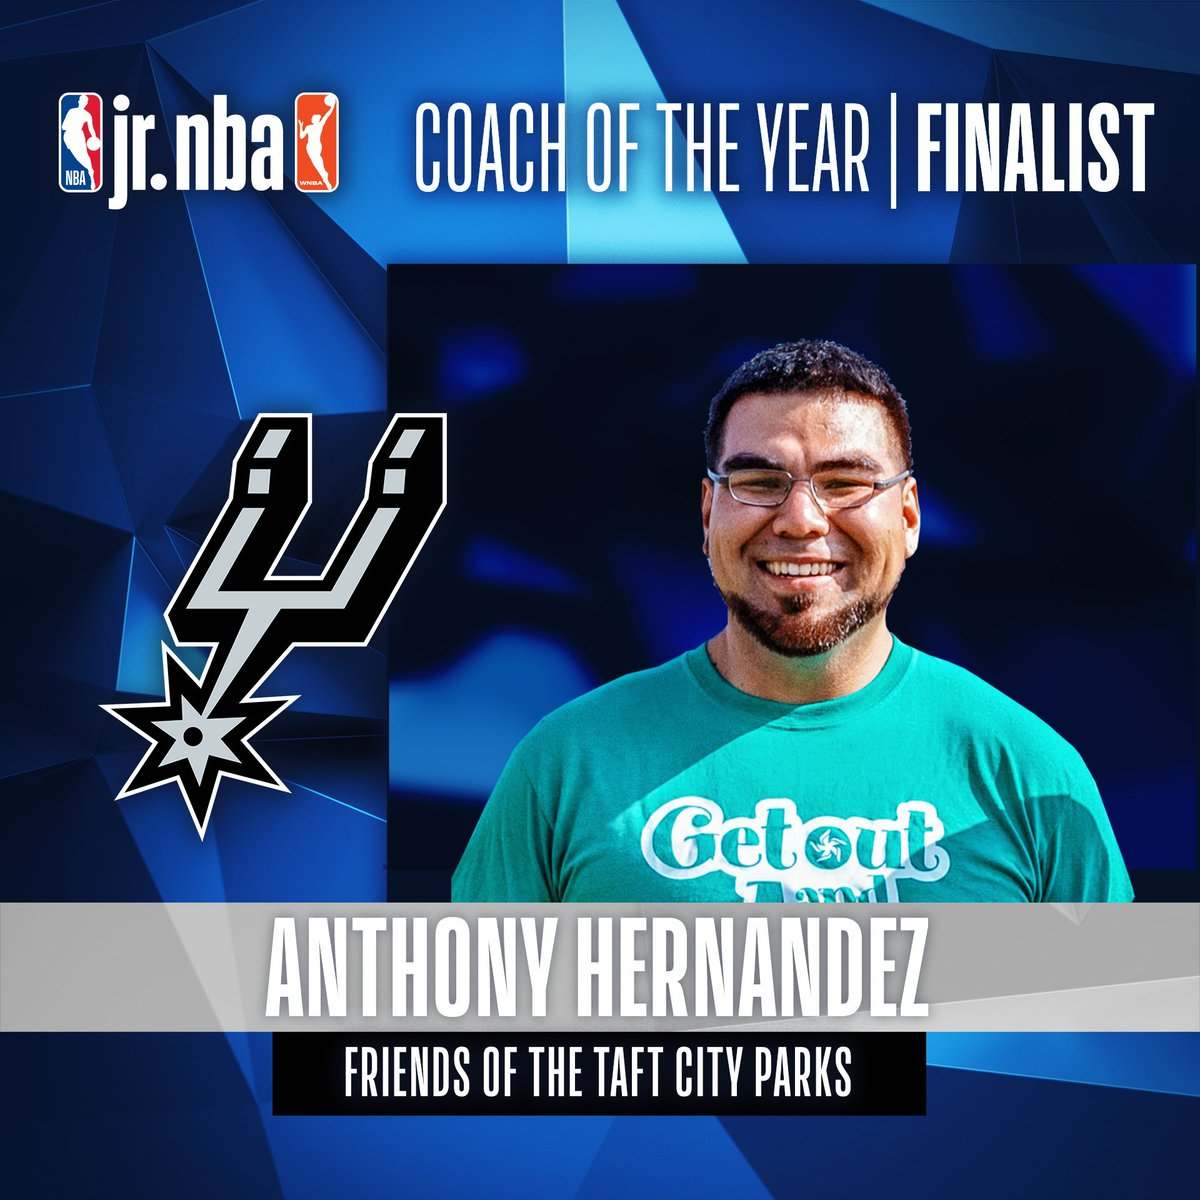 Congrats to @Anthony25474363, who has been selected as a Finalist for the #JrNBACOY!